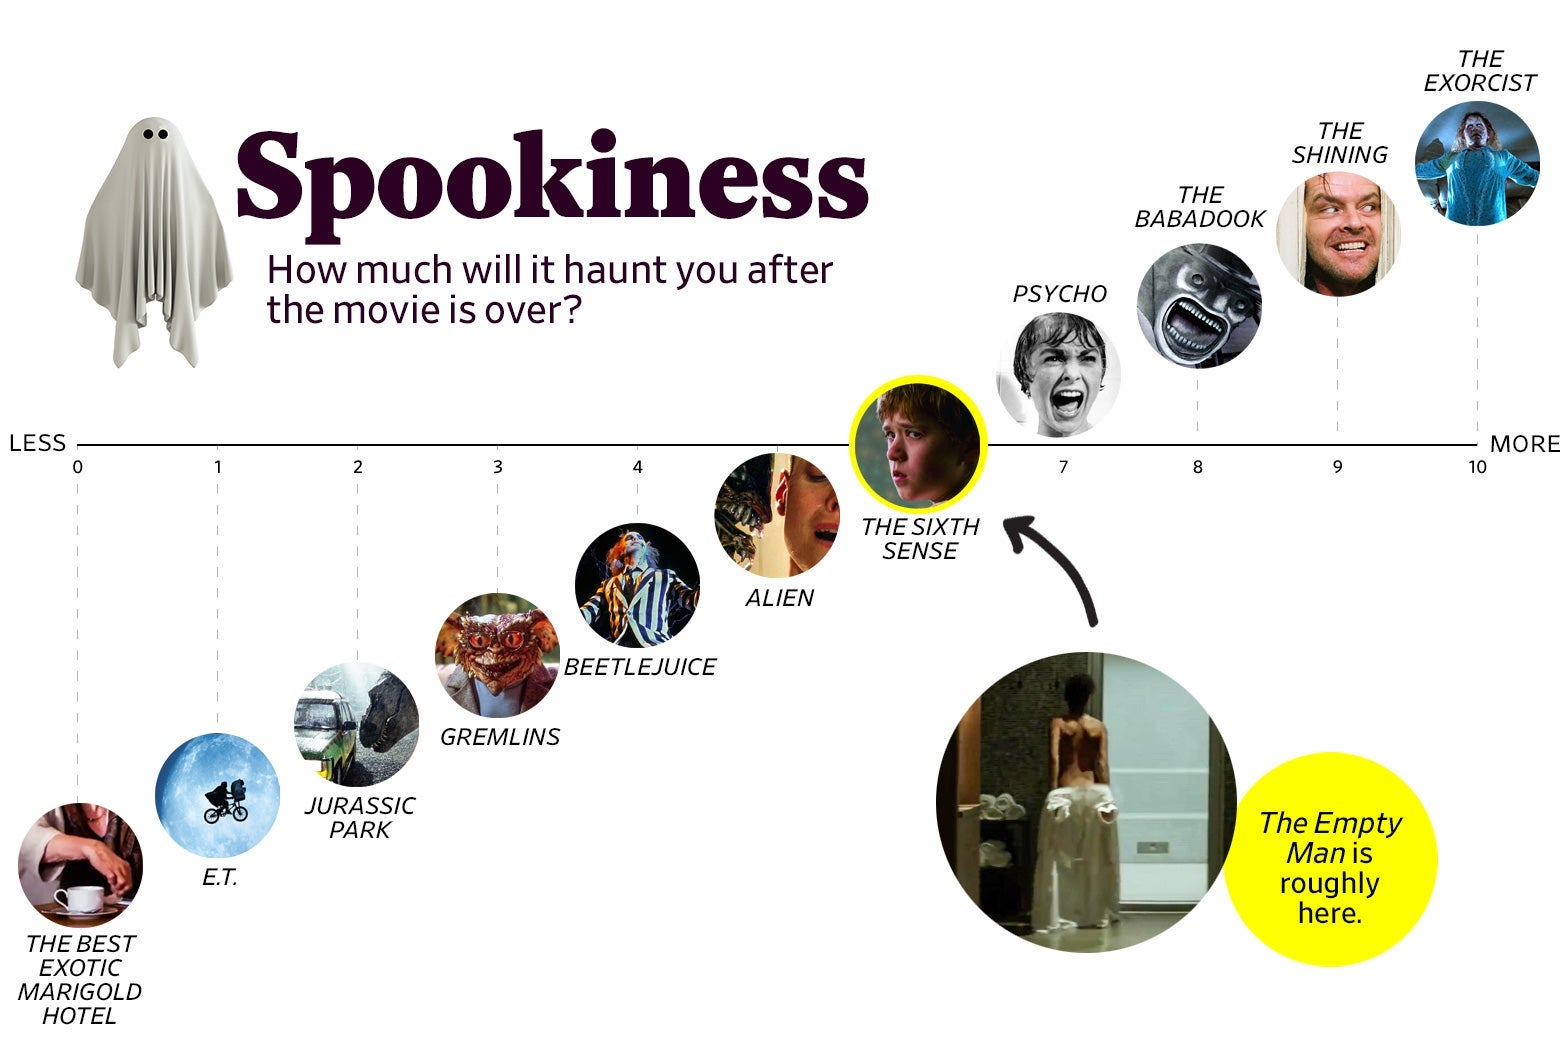 """A chart titled """"Spookiness: How much will it haunt you after the movie is over?"""" shows that The Empty Man ranks a 6 in spookiness, roughly the same as The Sixth Sense. The scale ranges from The Best Exotic Marigold Hotel (0) to The Exorcist (10)."""